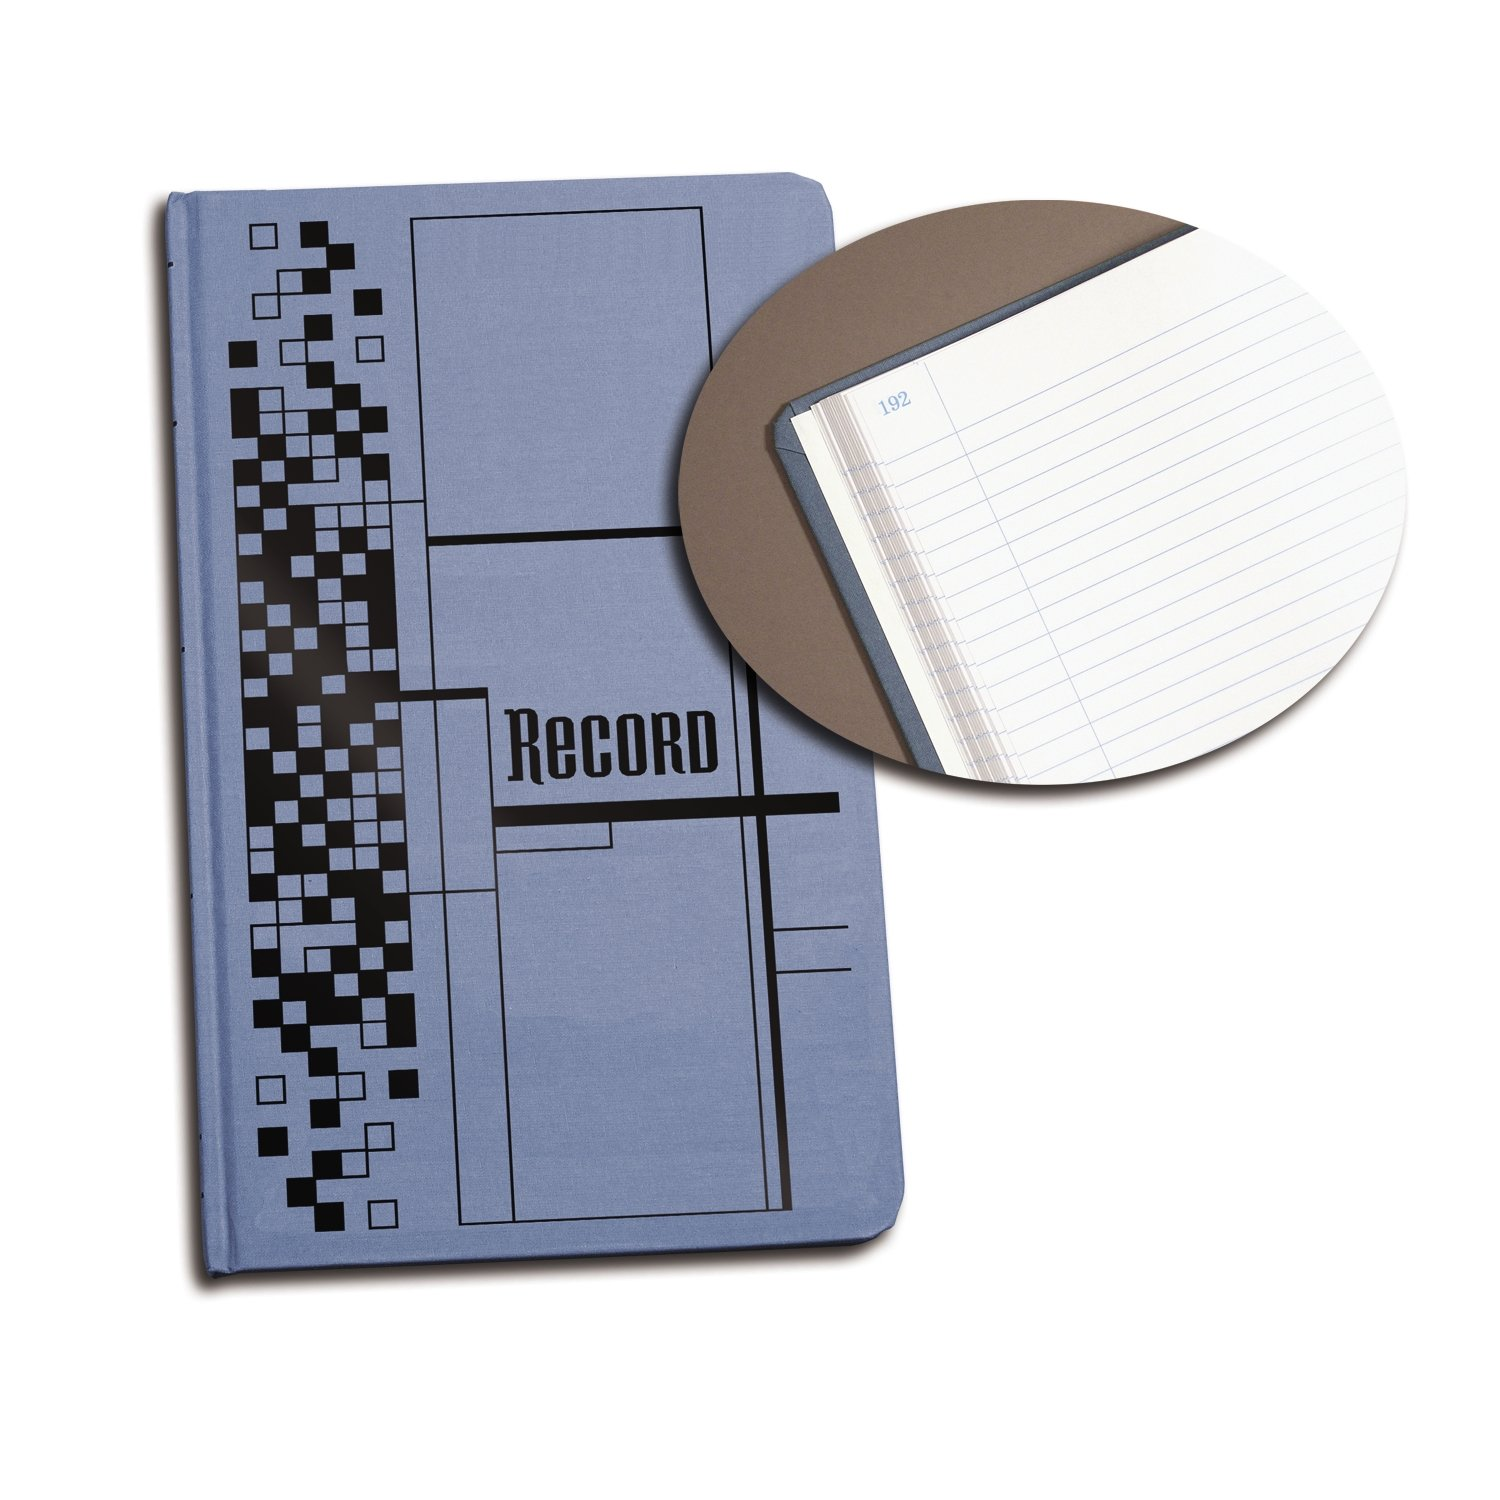 Adams Record Ledger, 12-1/8 x 7-5/8 Inches, Blue Cloth Cover, 300 Pages (ARB712CR3)